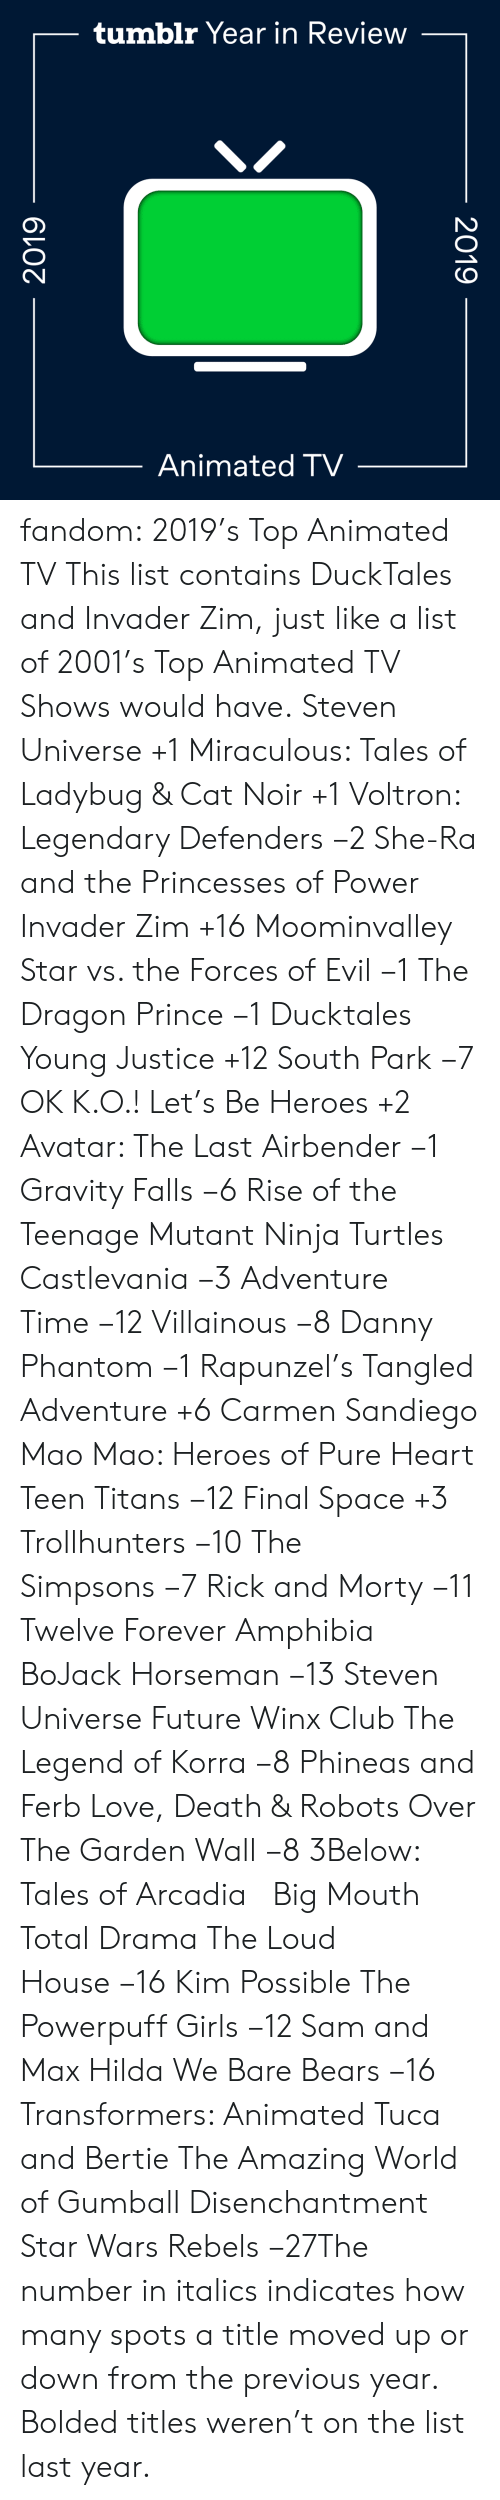 Prince: tumblr Year in Review  Animated TV  2019  2019 fandom:  2019's Top Animated TV  This list contains DuckTales and Invader Zim, just like a list of 2001's Top Animated TV Shows would have.  Steven Universe +1  Miraculous: Tales of Ladybug & Cat Noir +1  Voltron: Legendary Defenders −2  She-Ra and the Princesses of Power   Invader Zim +16  Moominvalley  Star vs. the Forces of Evil −1  The Dragon Prince −1  Ducktales  Young Justice +12  South Park −7  OK K.O.! Let's Be Heroes +2  Avatar: The Last Airbender −1  Gravity Falls −6  Rise of the Teenage Mutant Ninja Turtles  Castlevania −3  Adventure Time −12  Villainous −8  Danny Phantom −1  Rapunzel's Tangled Adventure +6  Carmen Sandiego  Mao Mao: Heroes of Pure Heart  Teen Titans −12  Final Space +3  Trollhunters −10  The Simpsons −7  Rick and Morty −11  Twelve Forever  Amphibia  BoJack Horseman −13  Steven Universe Future  Winx Club  The Legend of Korra −8  Phineas and Ferb  Love, Death & Robots  Over The Garden Wall −8  3Below: Tales of Arcadia    Big Mouth  Total Drama  The Loud House −16  Kim Possible  The Powerpuff Girls −12  Sam and Max  Hilda  We Bare Bears −16  Transformers: Animated  Tuca and Bertie  The Amazing World of Gumball  Disenchantment Star Wars Rebels −27The number in italics indicates how many spots a title moved up or down from the previous year. Bolded titles weren't on the list last year.